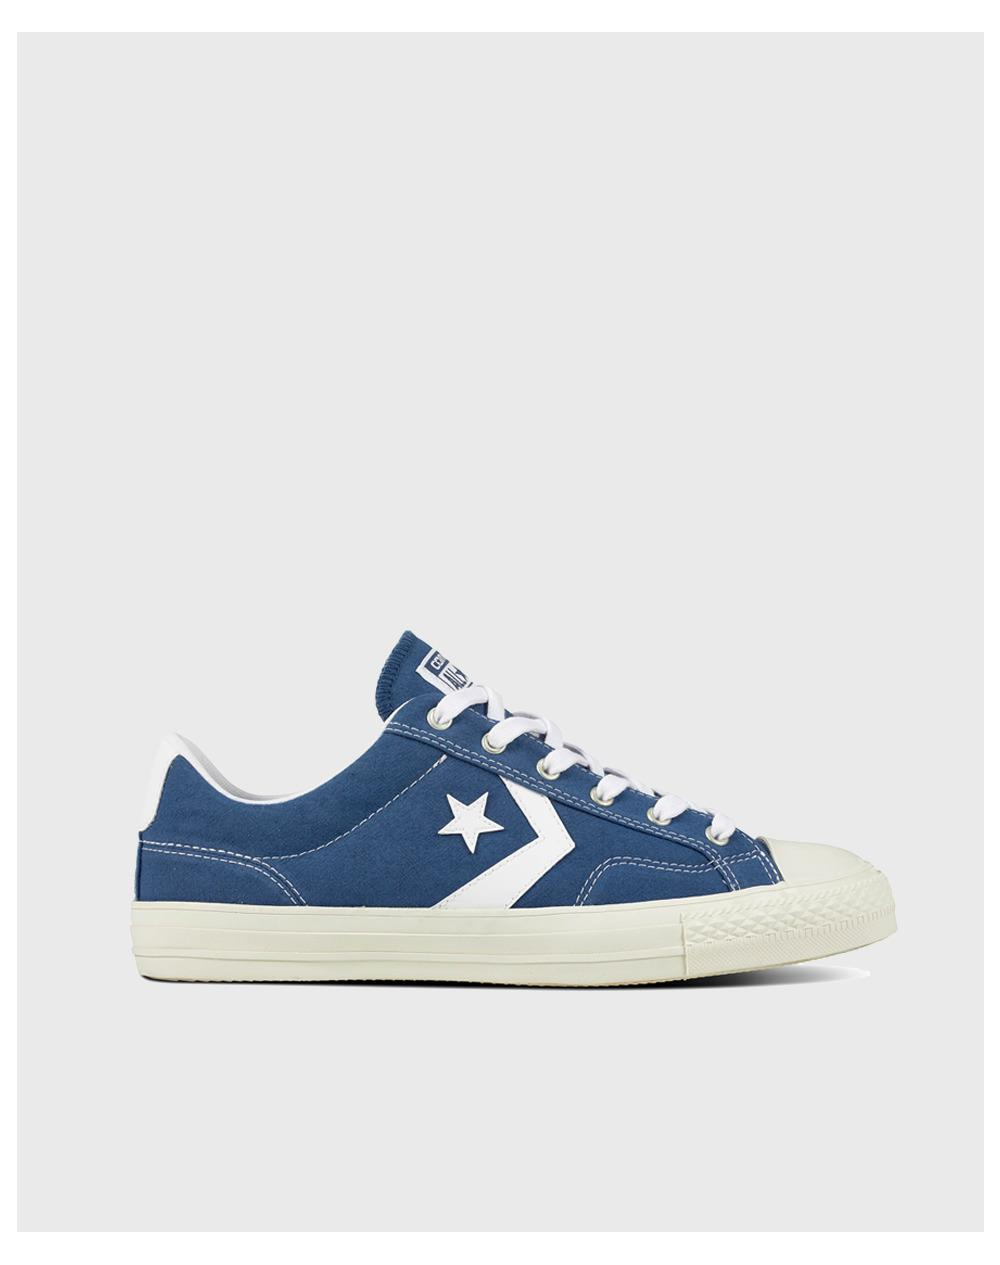 3f106e8966b Converse Star Player Ox Casual Unisex Trainers in Blue for Men - Lyst